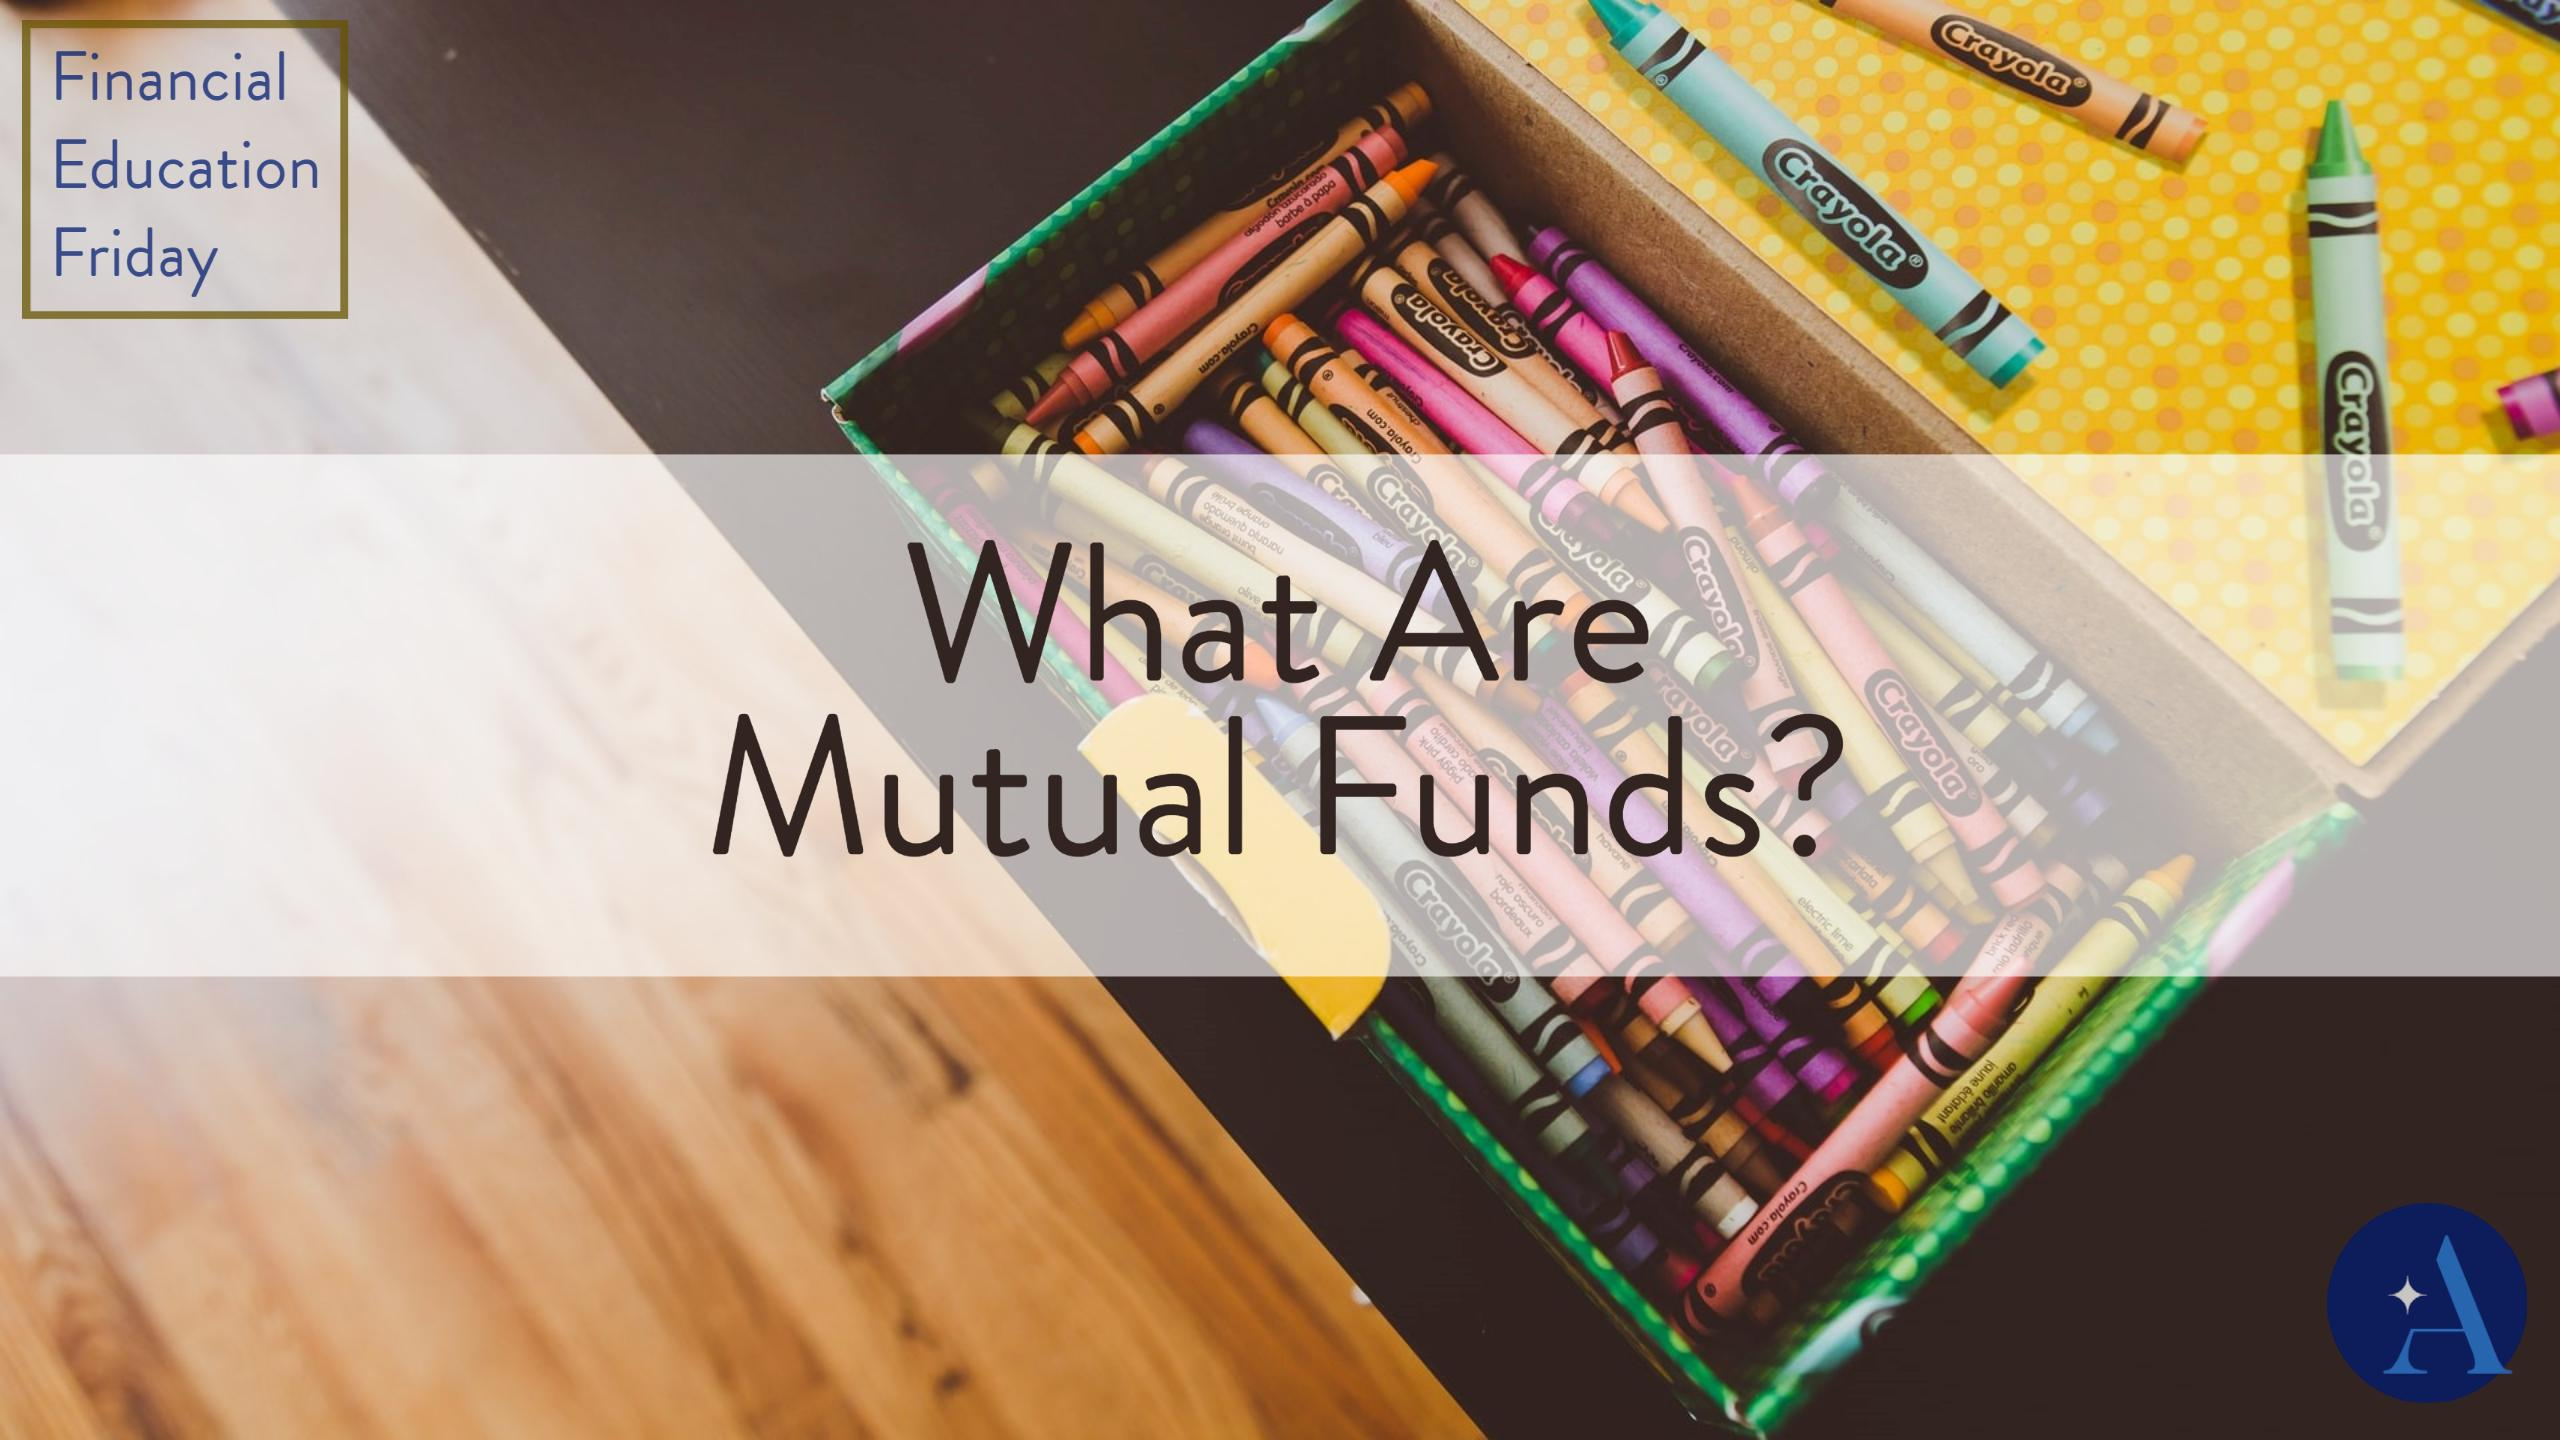 FinEdFriday: What Are Mutual Funds? Thumbnail